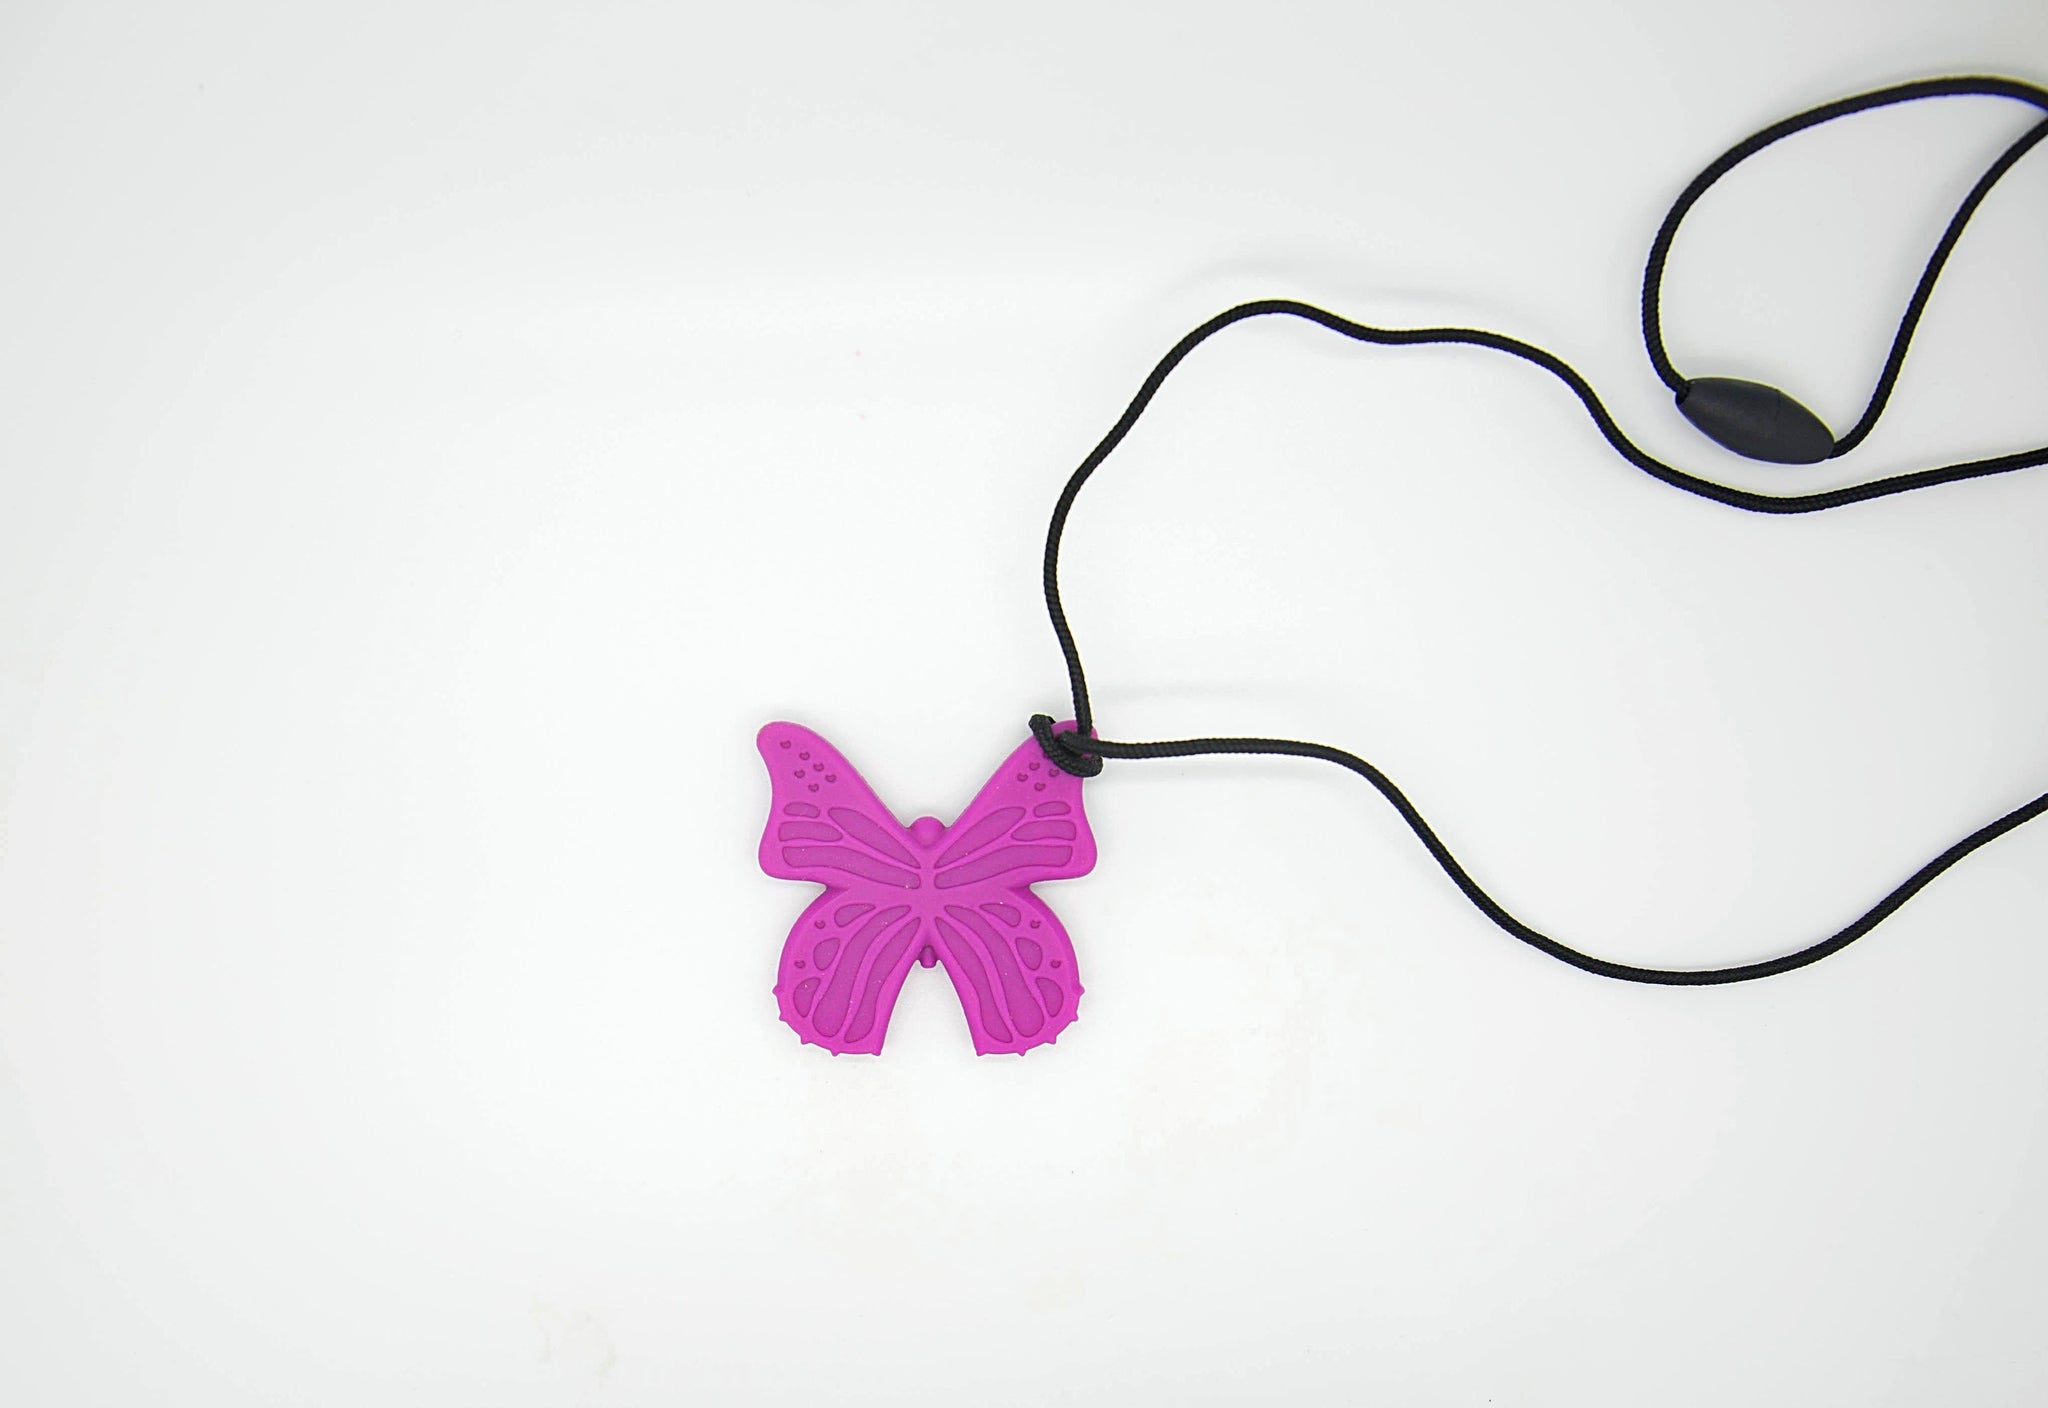 Bestie Toys Magical Butterfly Chewelry